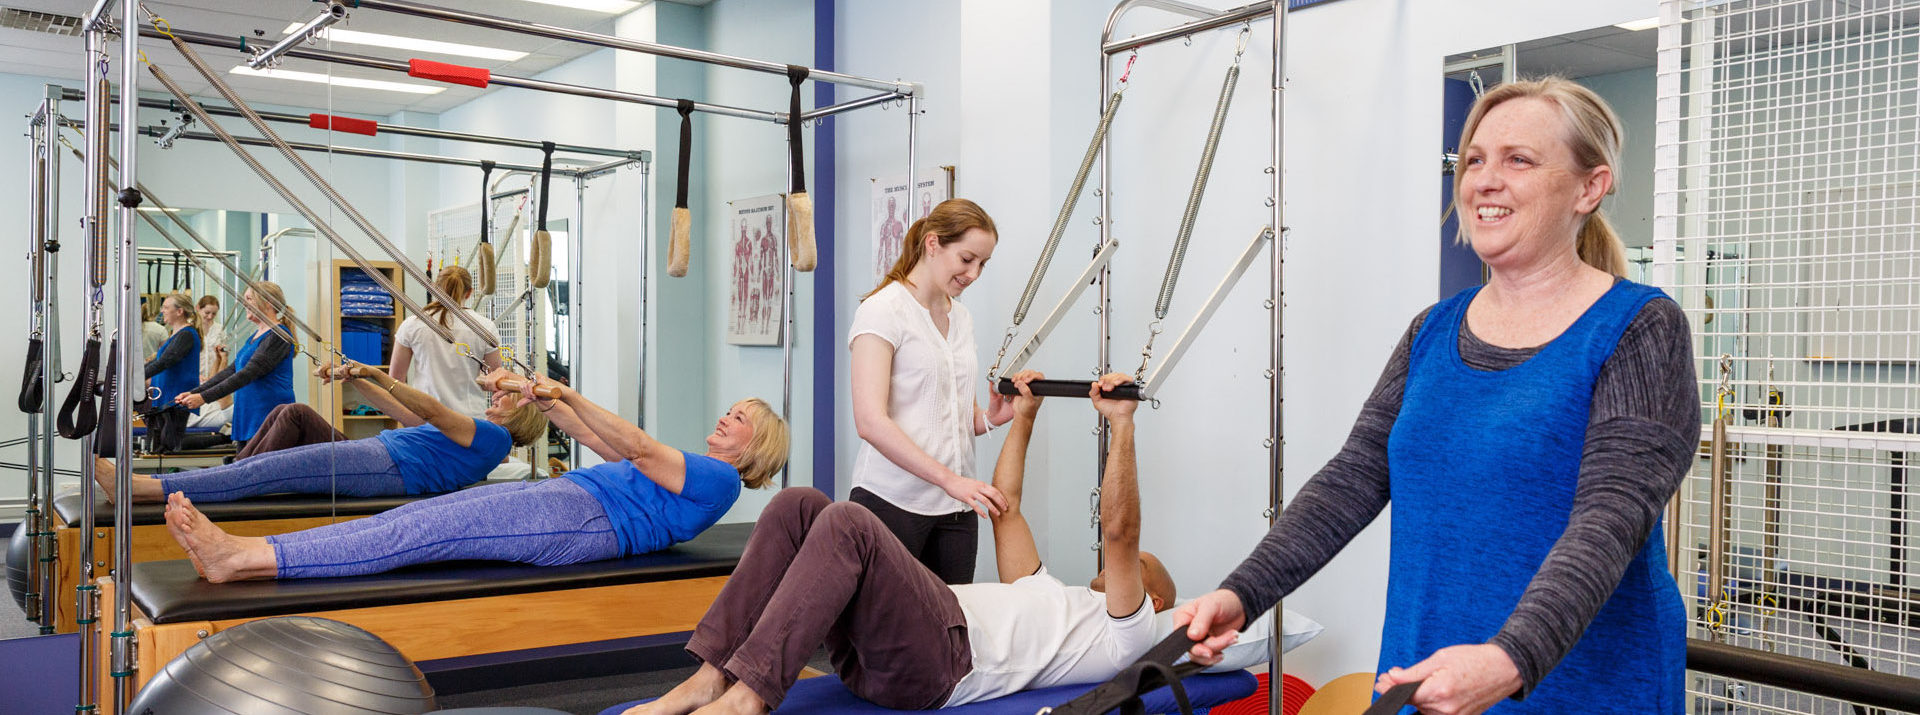 maylands-physio-pilates-group-sessions